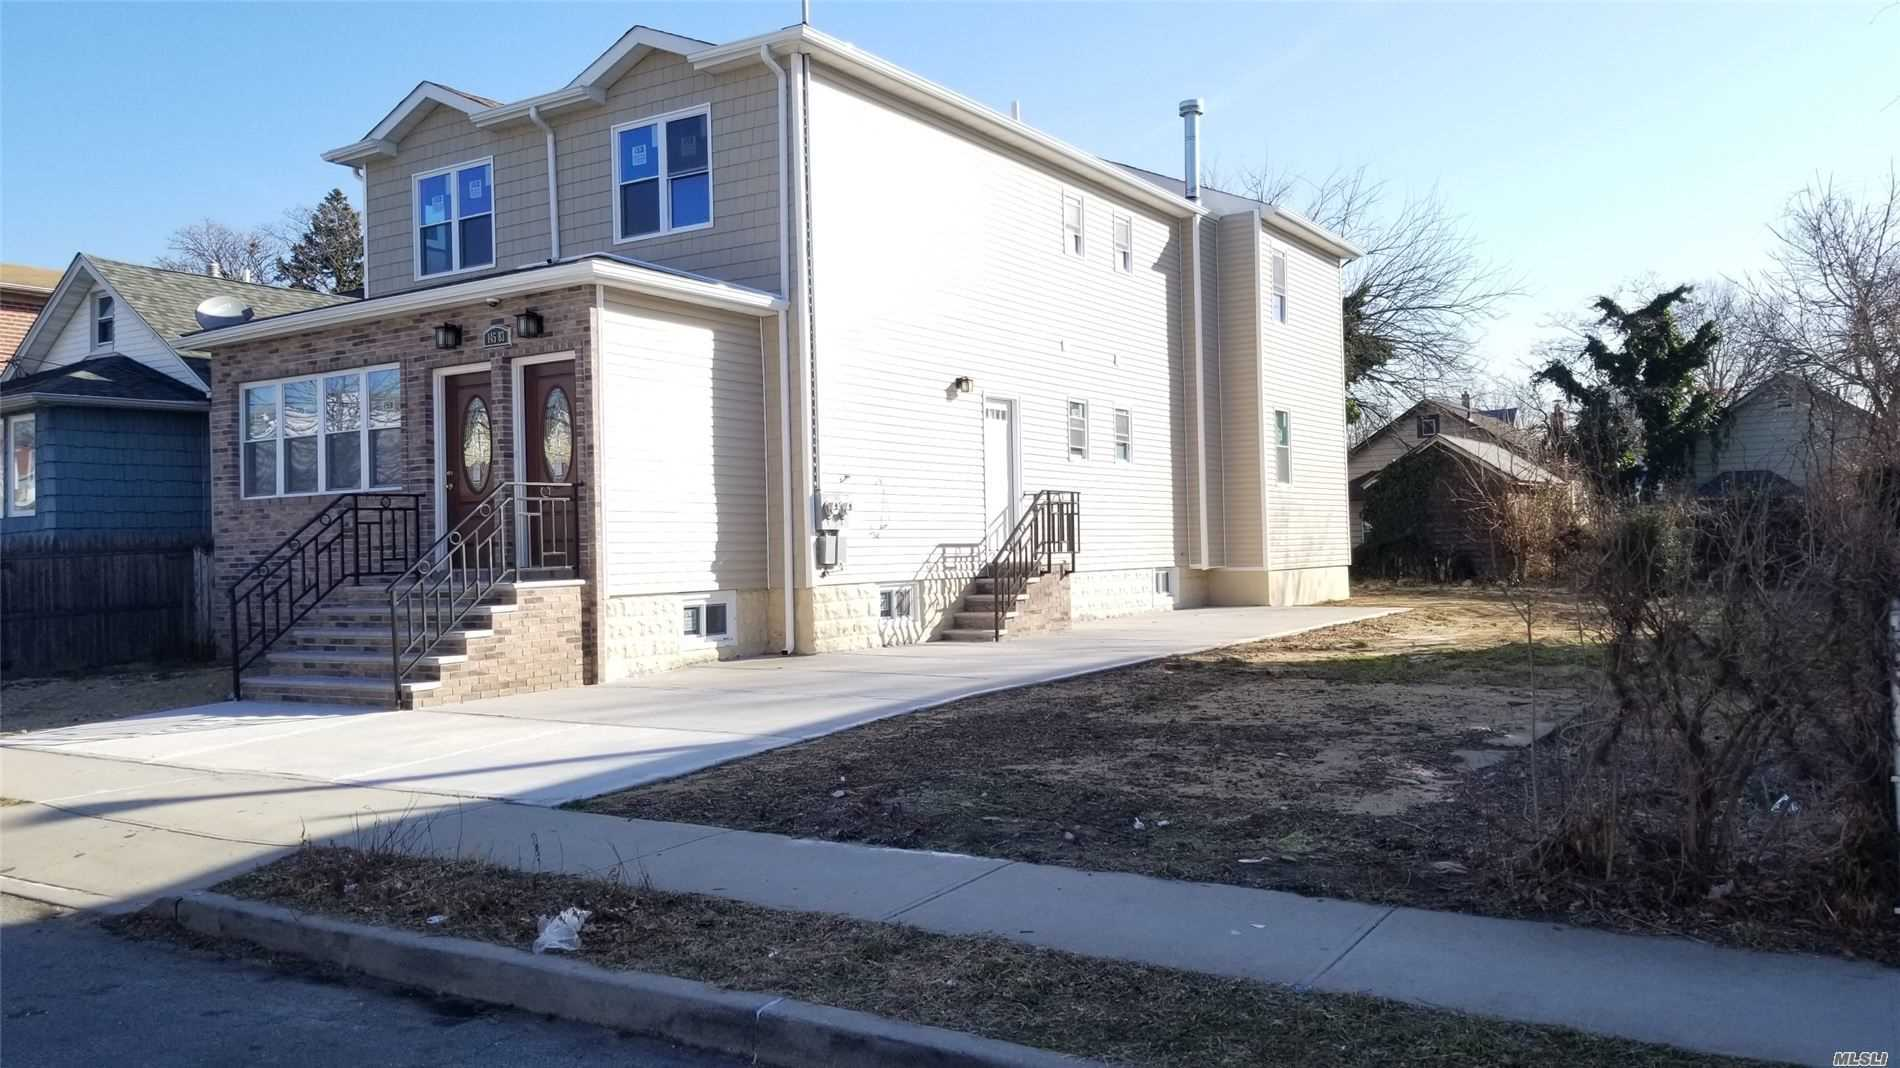 Property for sale at 145-83 220 Street, Rosedale NY 11422, Rosedale,  New York 11422